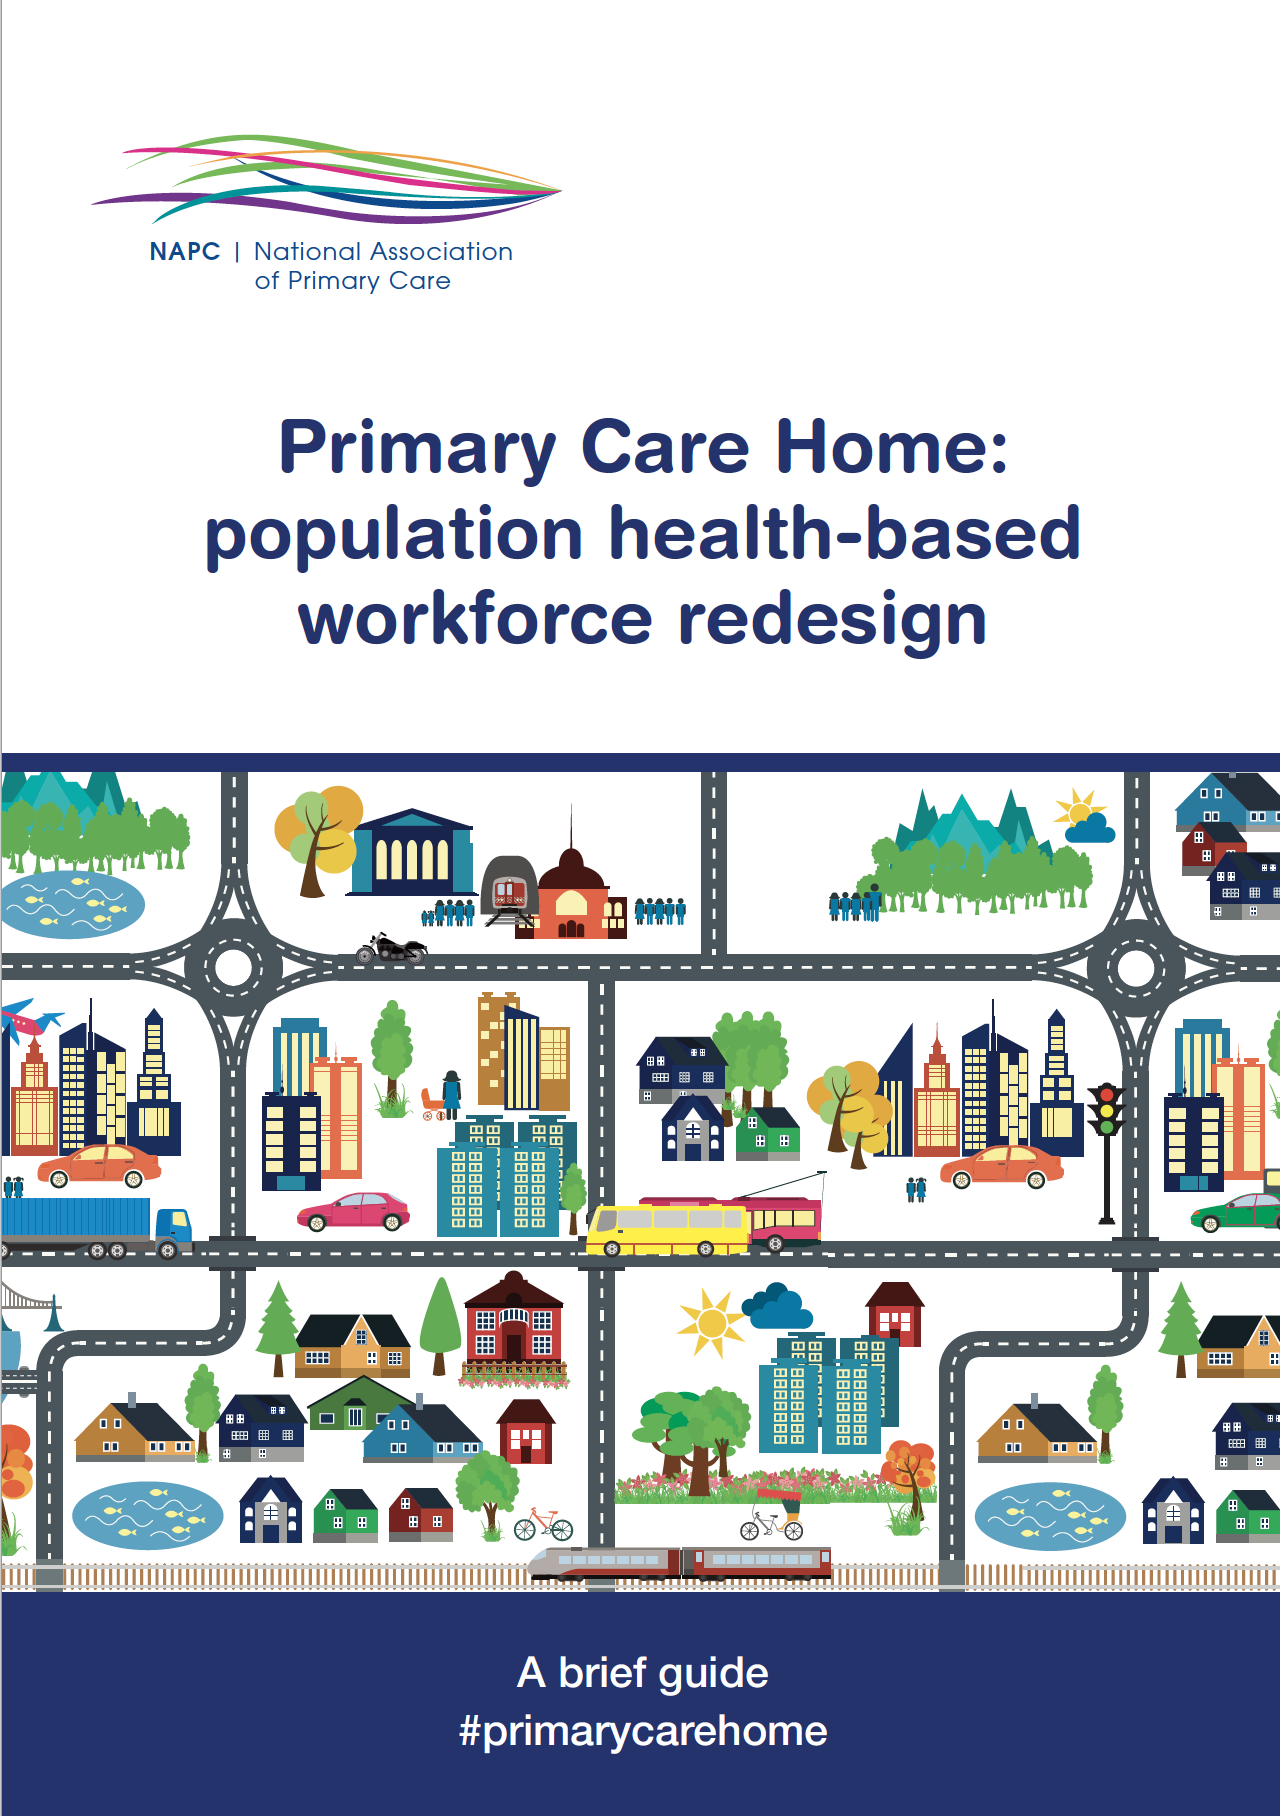 Primary Care Home workforce redesign booklet